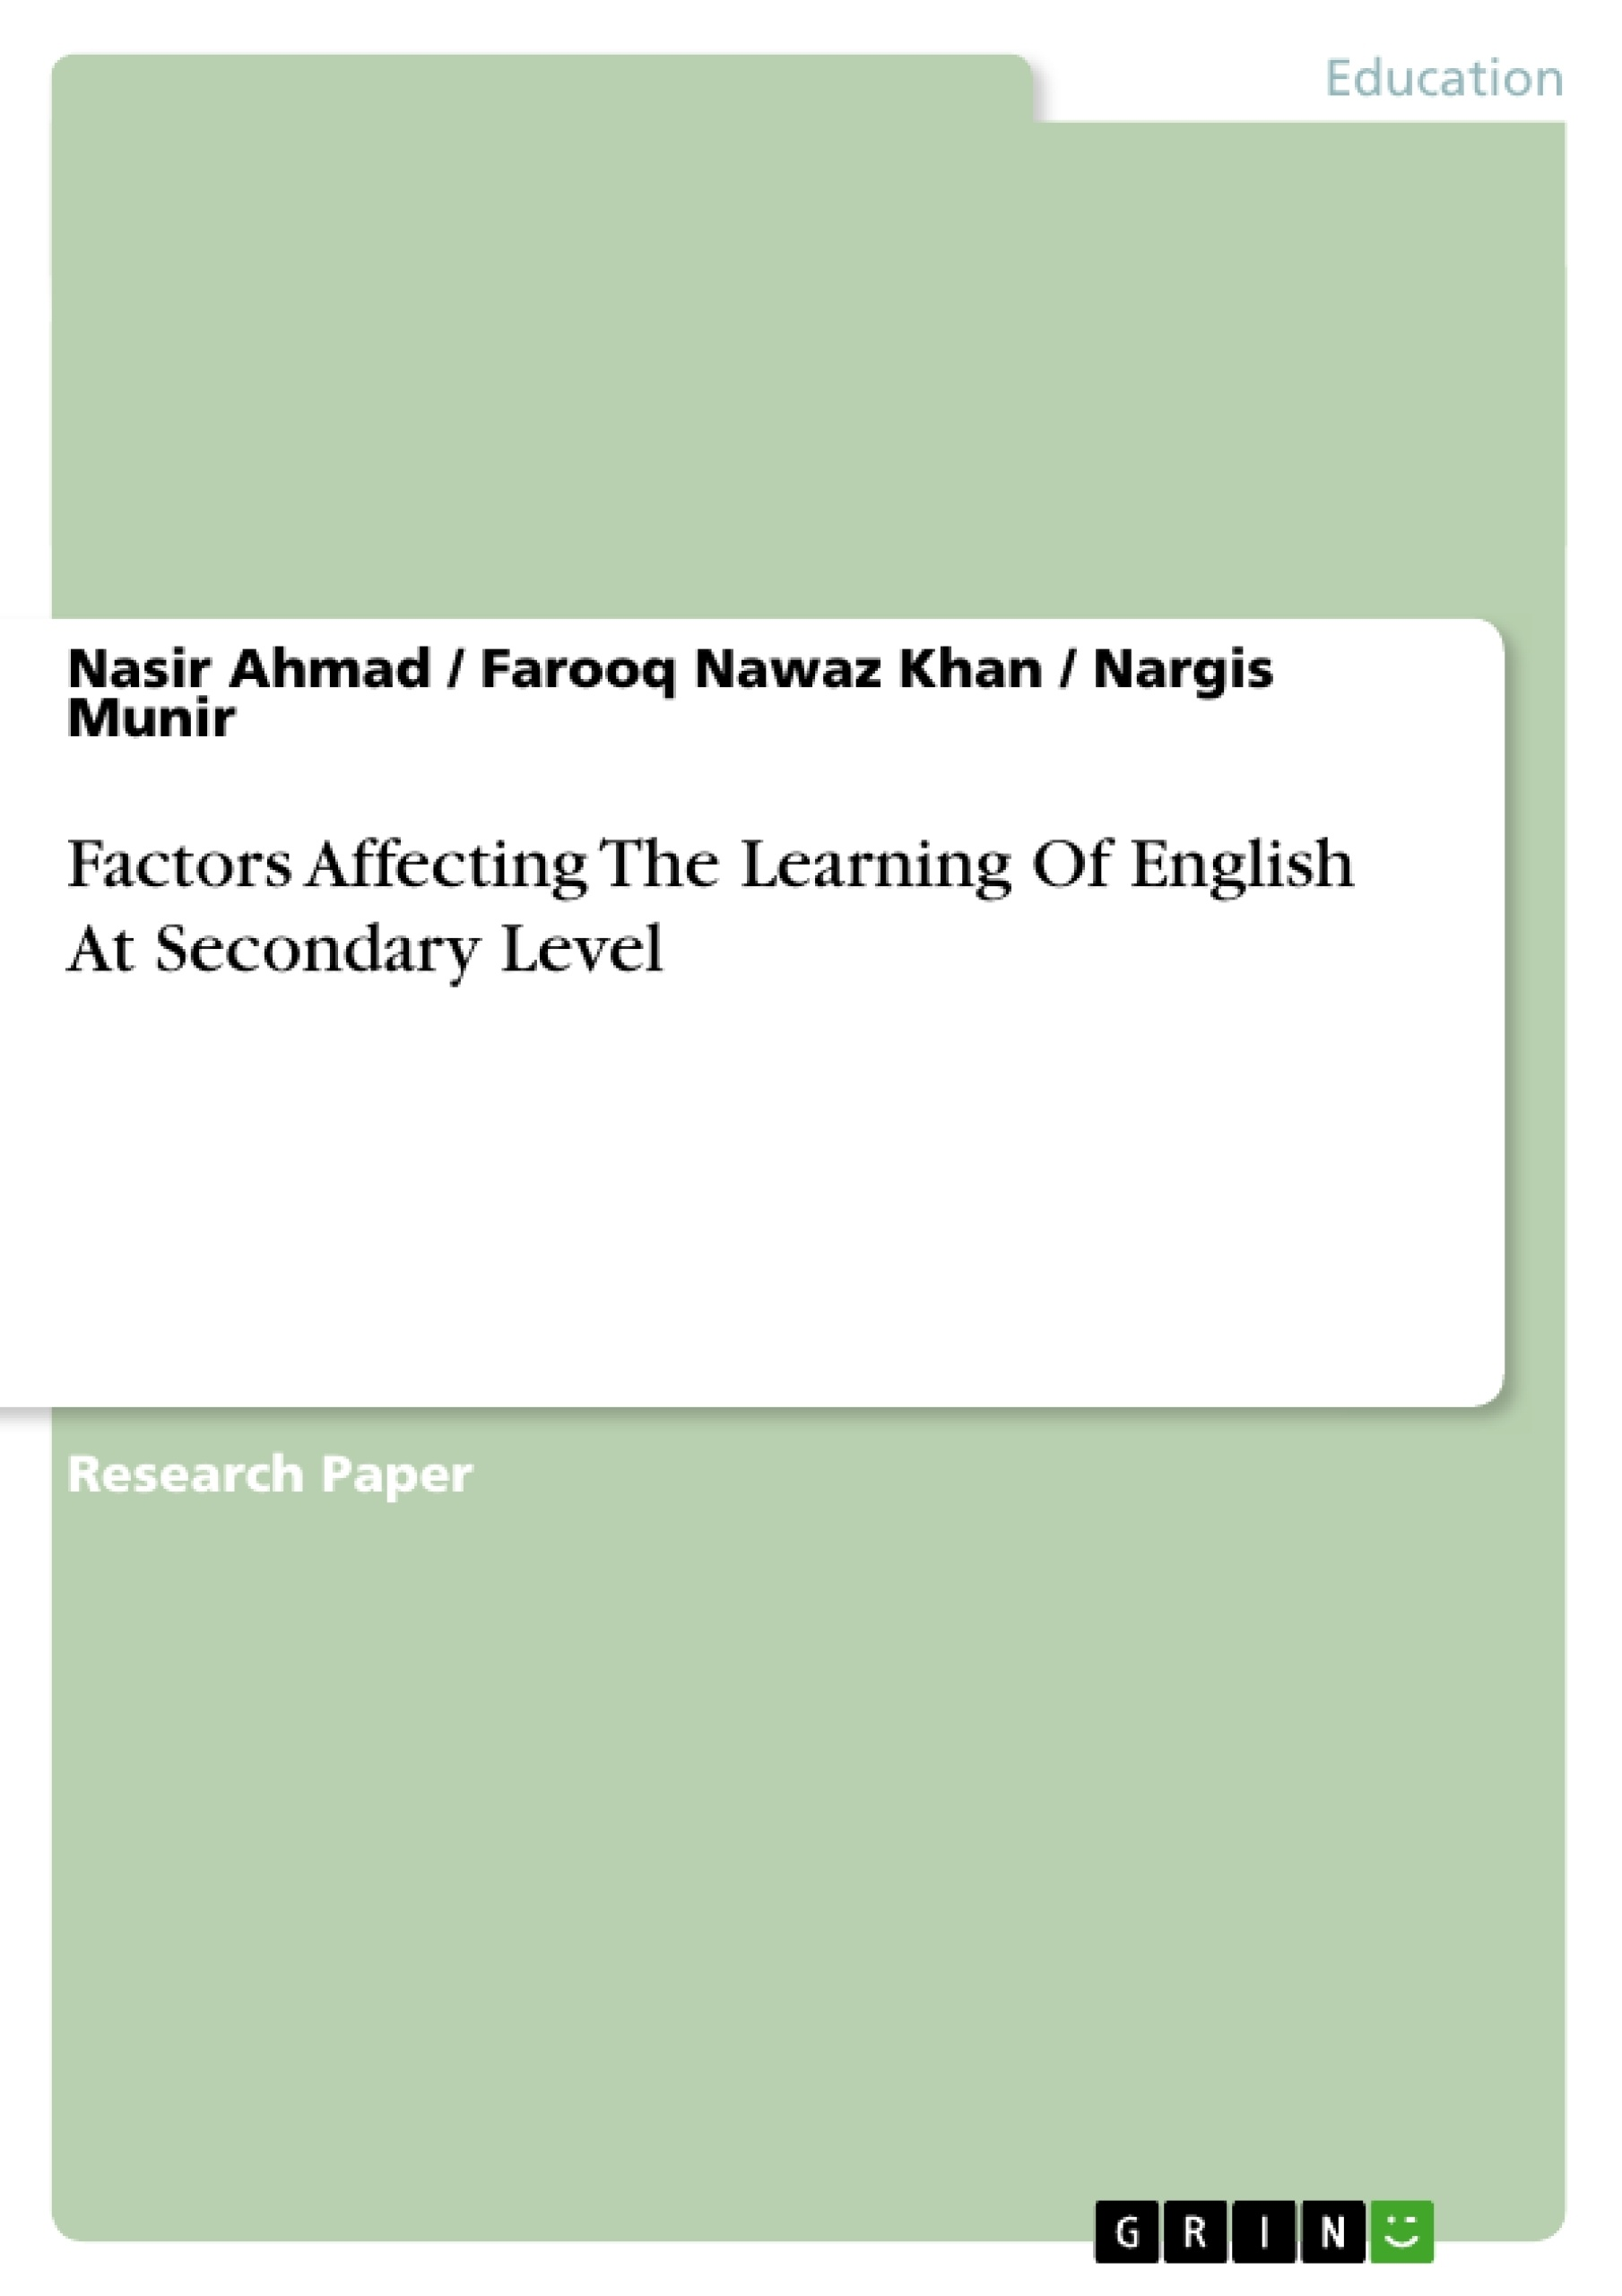 Title: Factors  Affecting  The  Learning  Of  English  At Secondary Level